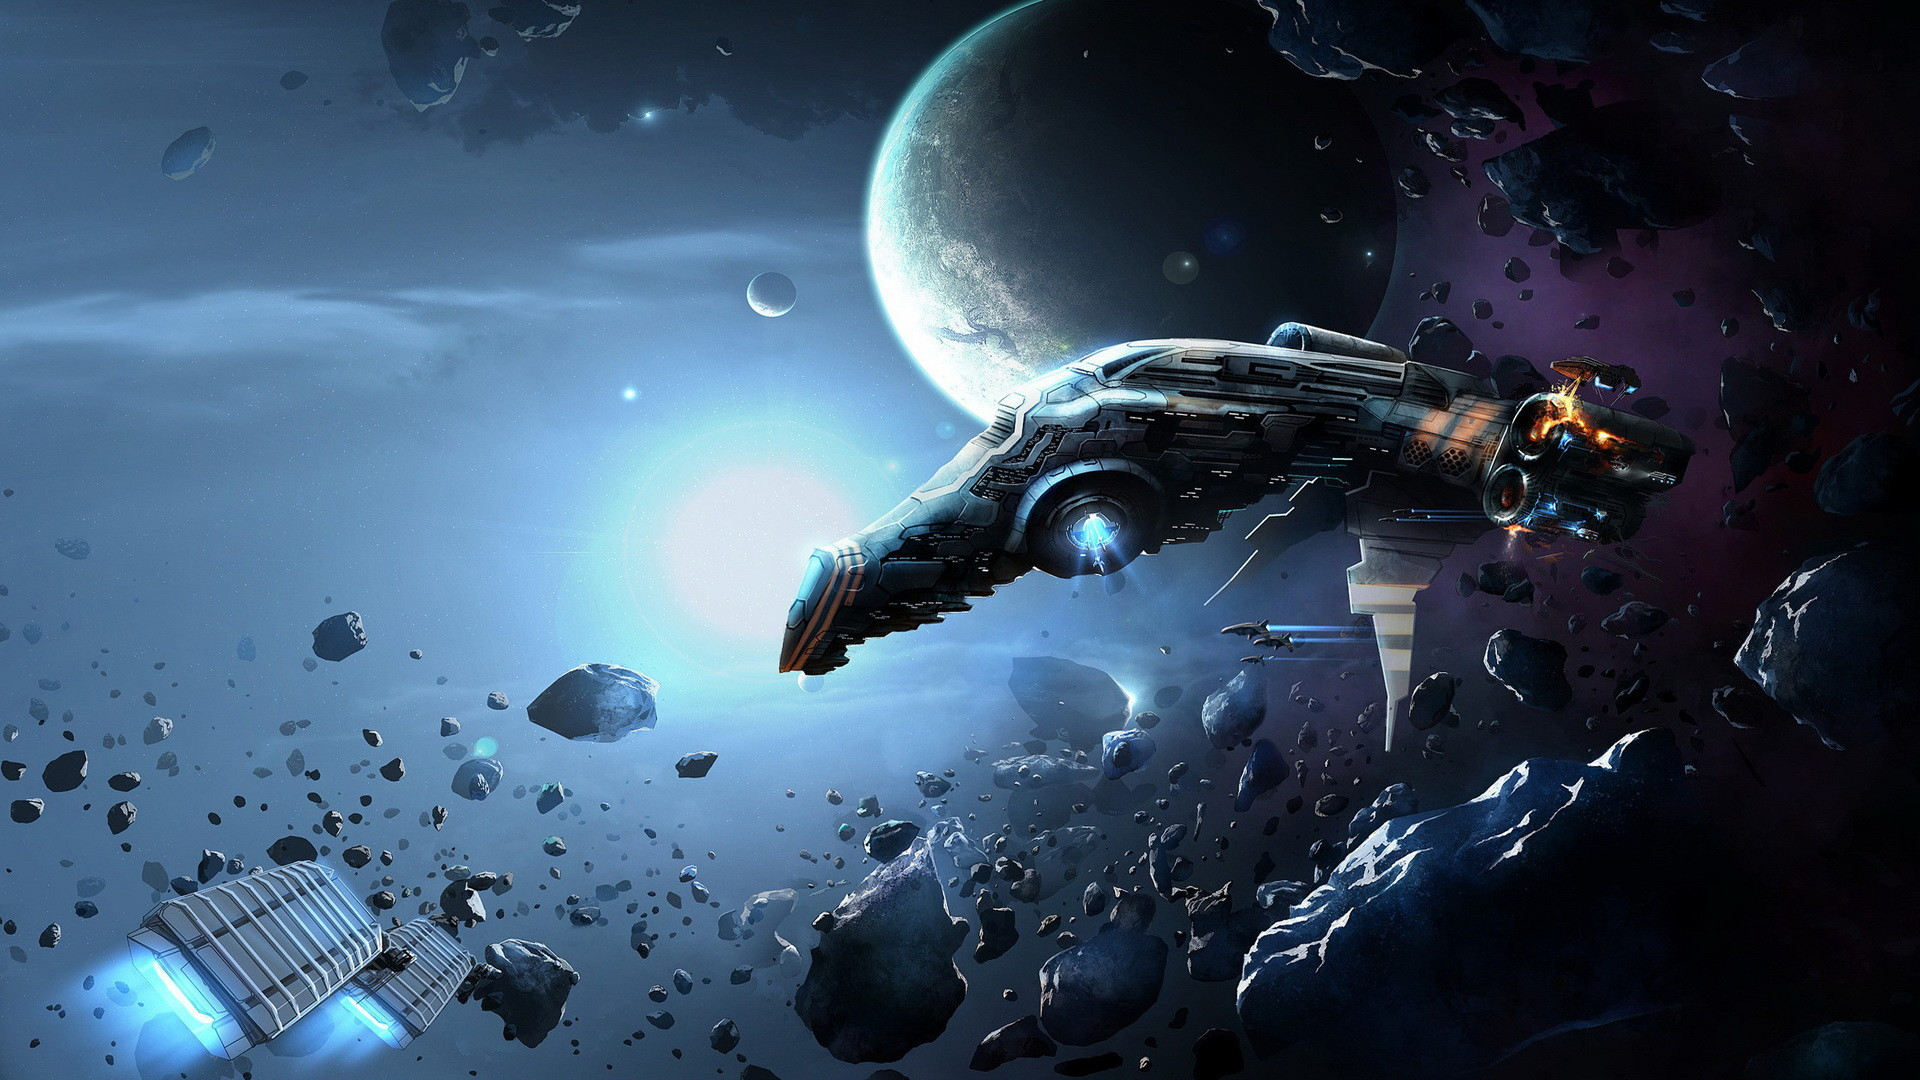 Game HD Wallpapers, Video Games HD 1080p Wallpaper, eve online